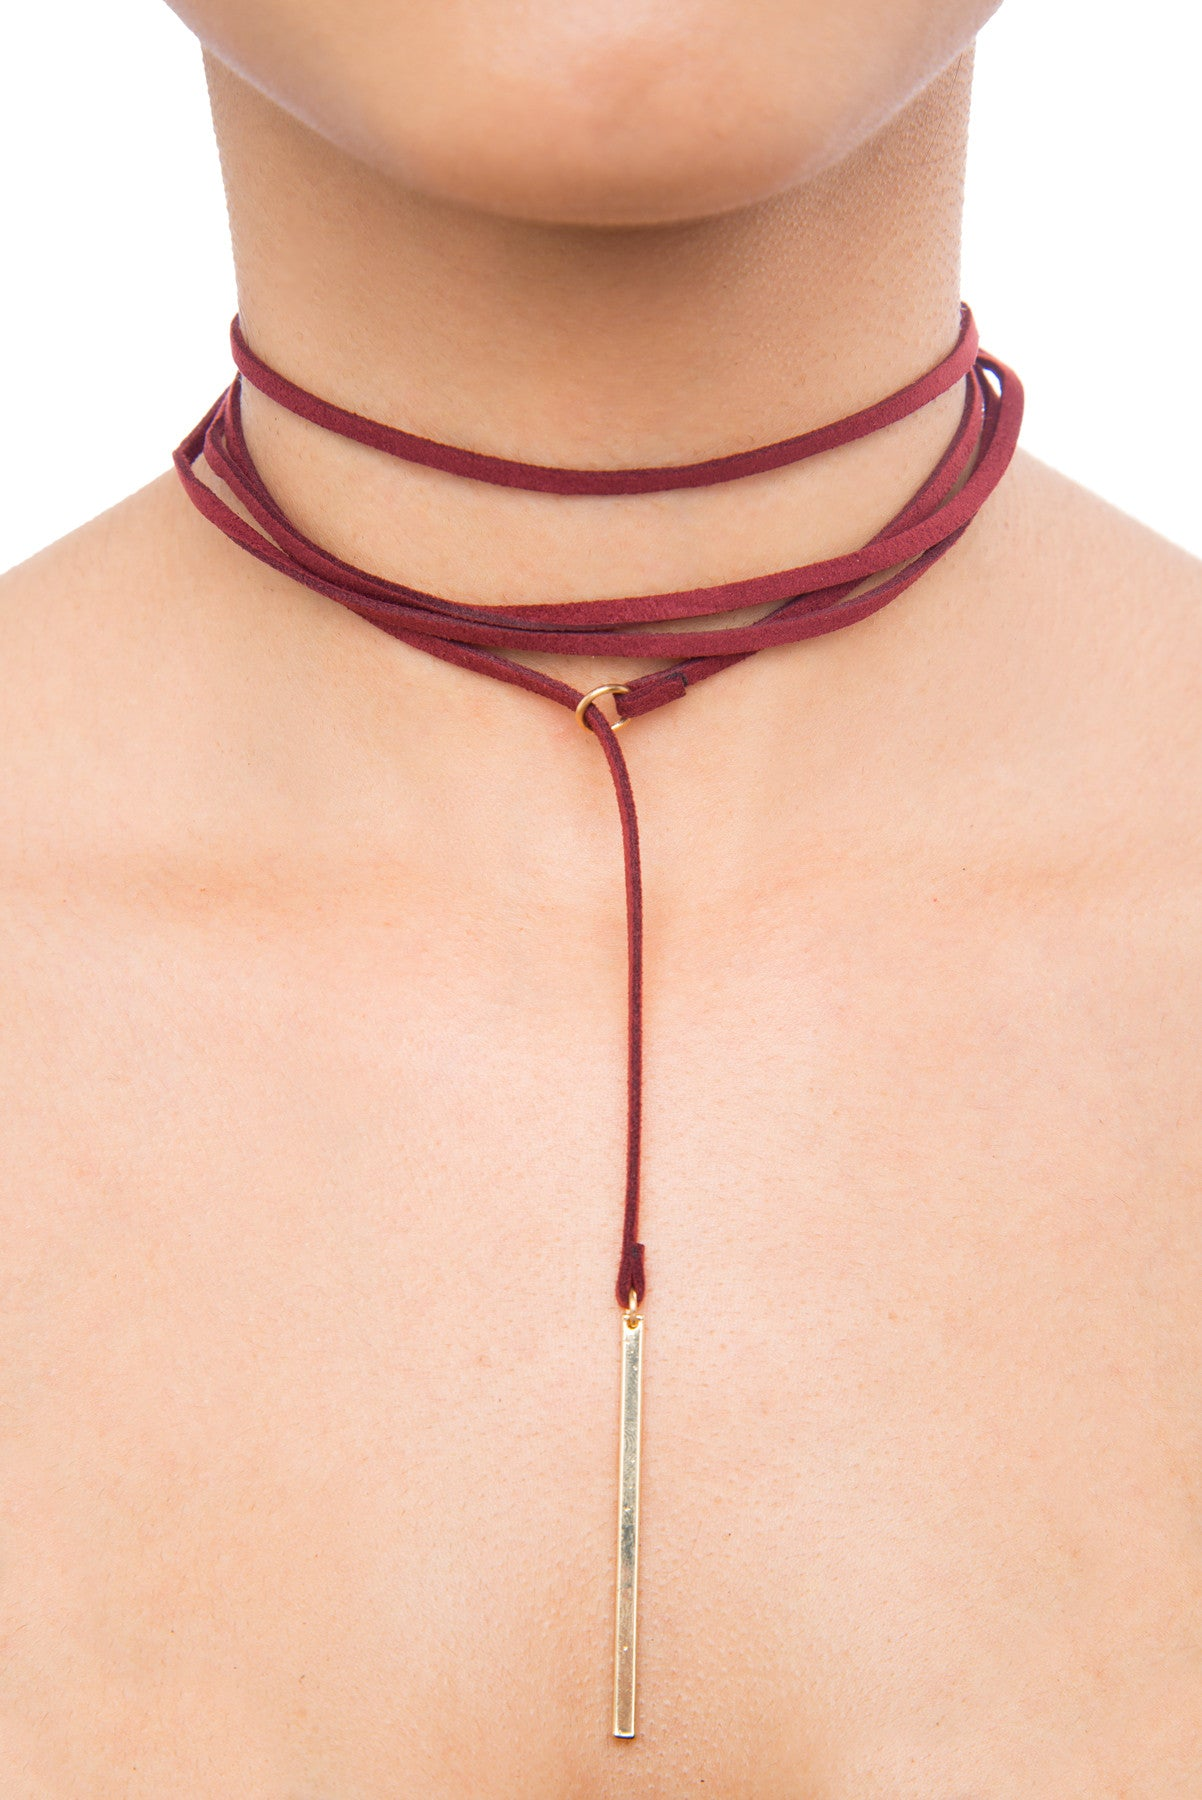 Tally Burgundy Choker